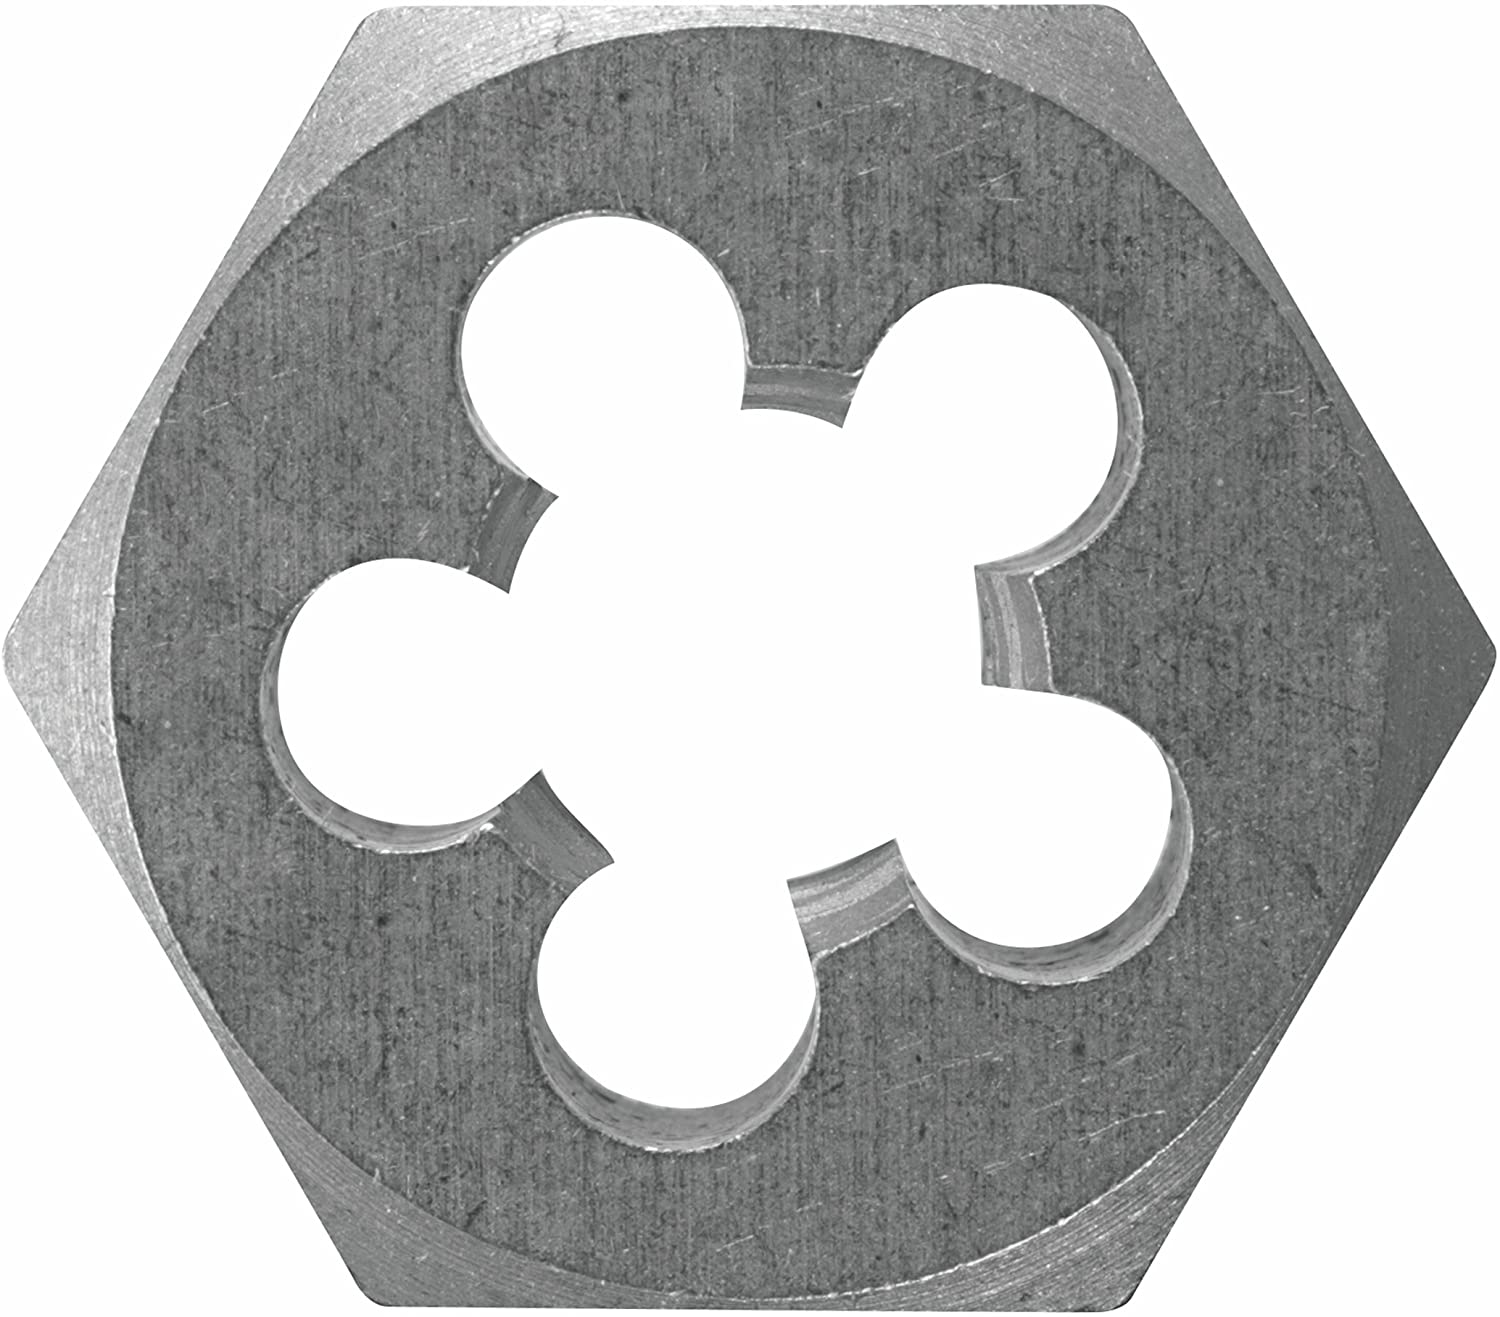 Vermont American 20731 5/8-Inch to 18 National Fine High Carbon Steel Fractional Heby Die